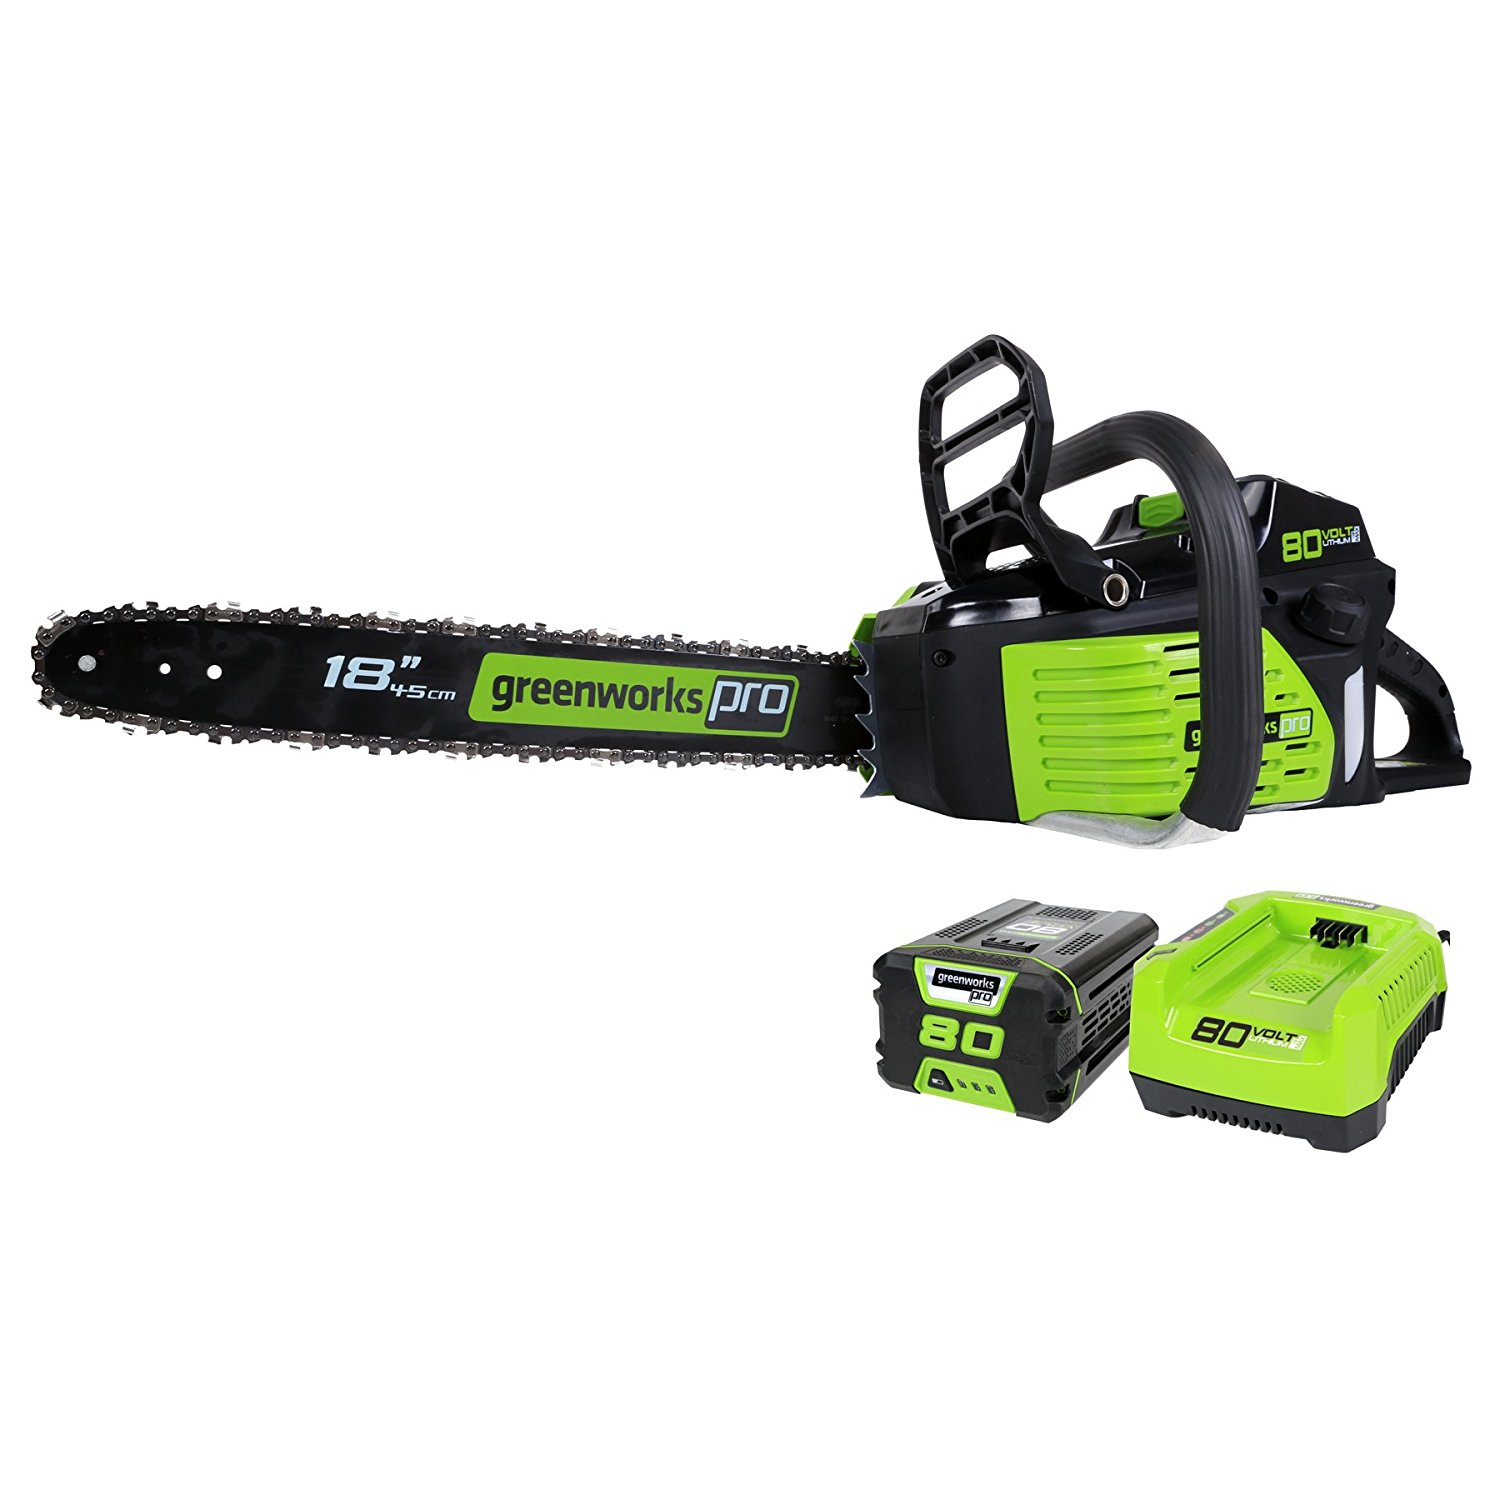 Greenworks Pro 18-Inch 80V Cordless Lithium-Ion Chainsaw, Battery and Charger Included GCS80421 by Sunrise Global Marketing, LLC